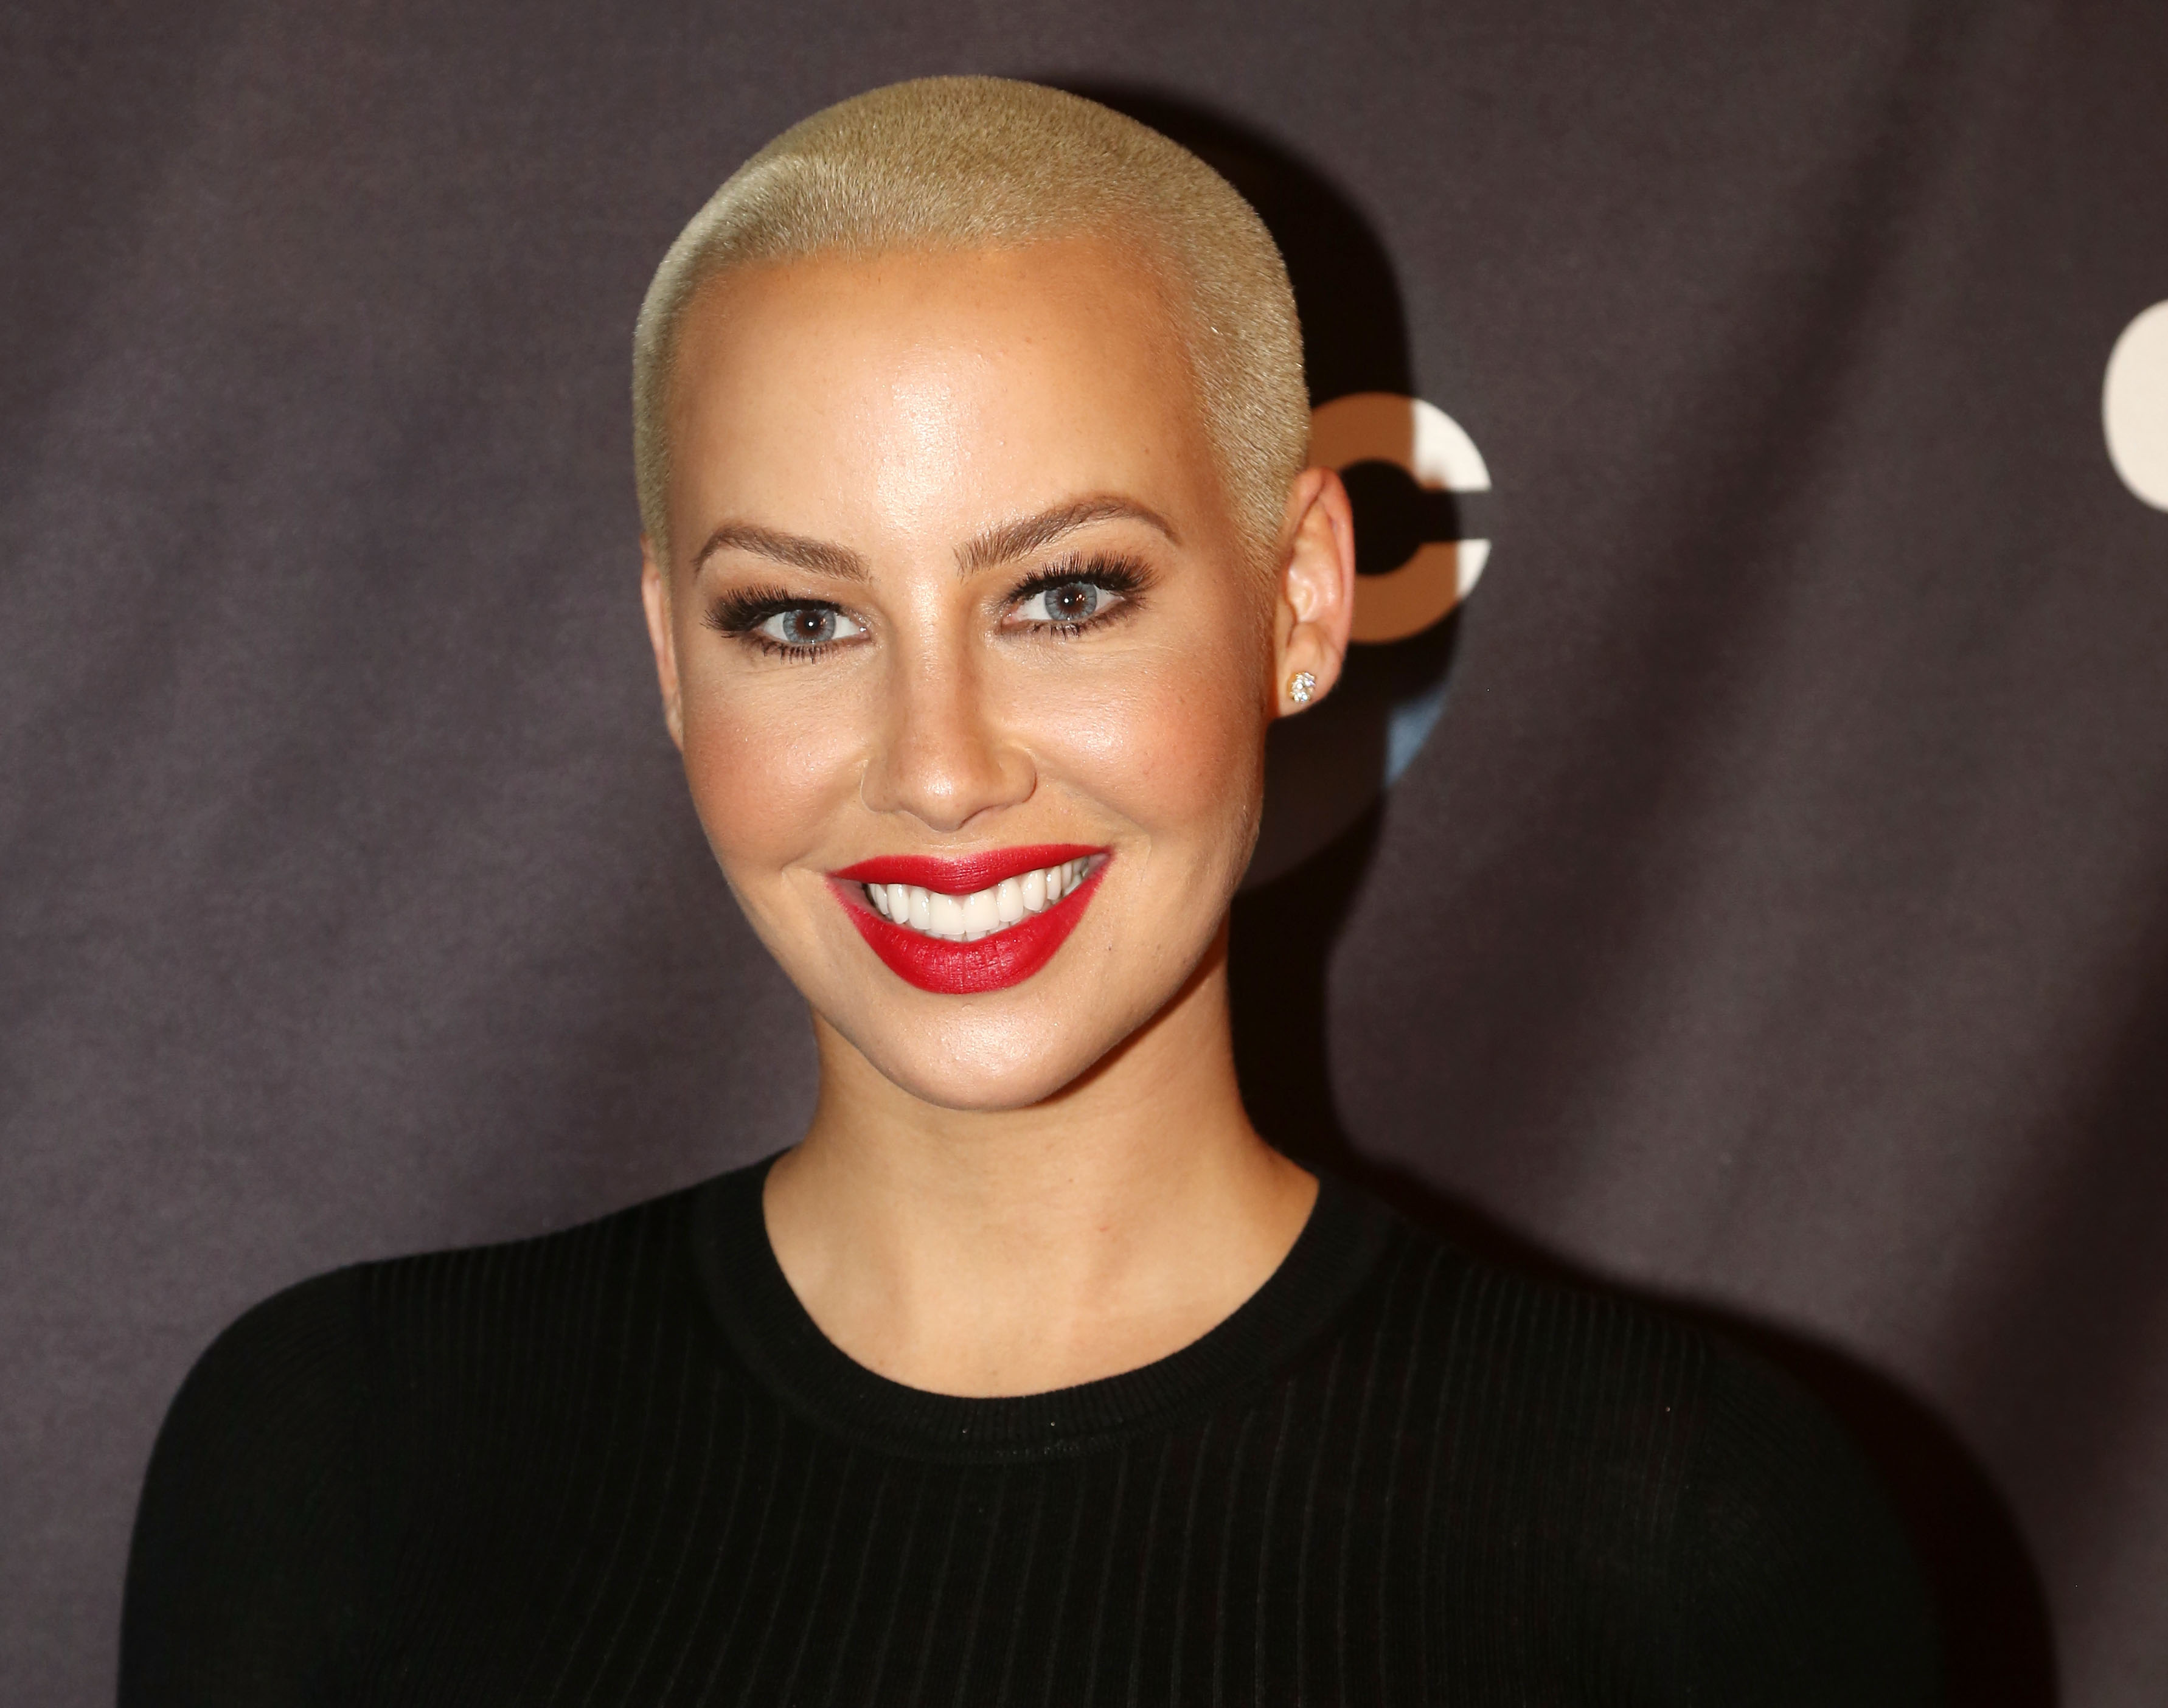 Amber Rose spilled the secret to perfect skin, and her answer is so surprising (and totally hot)